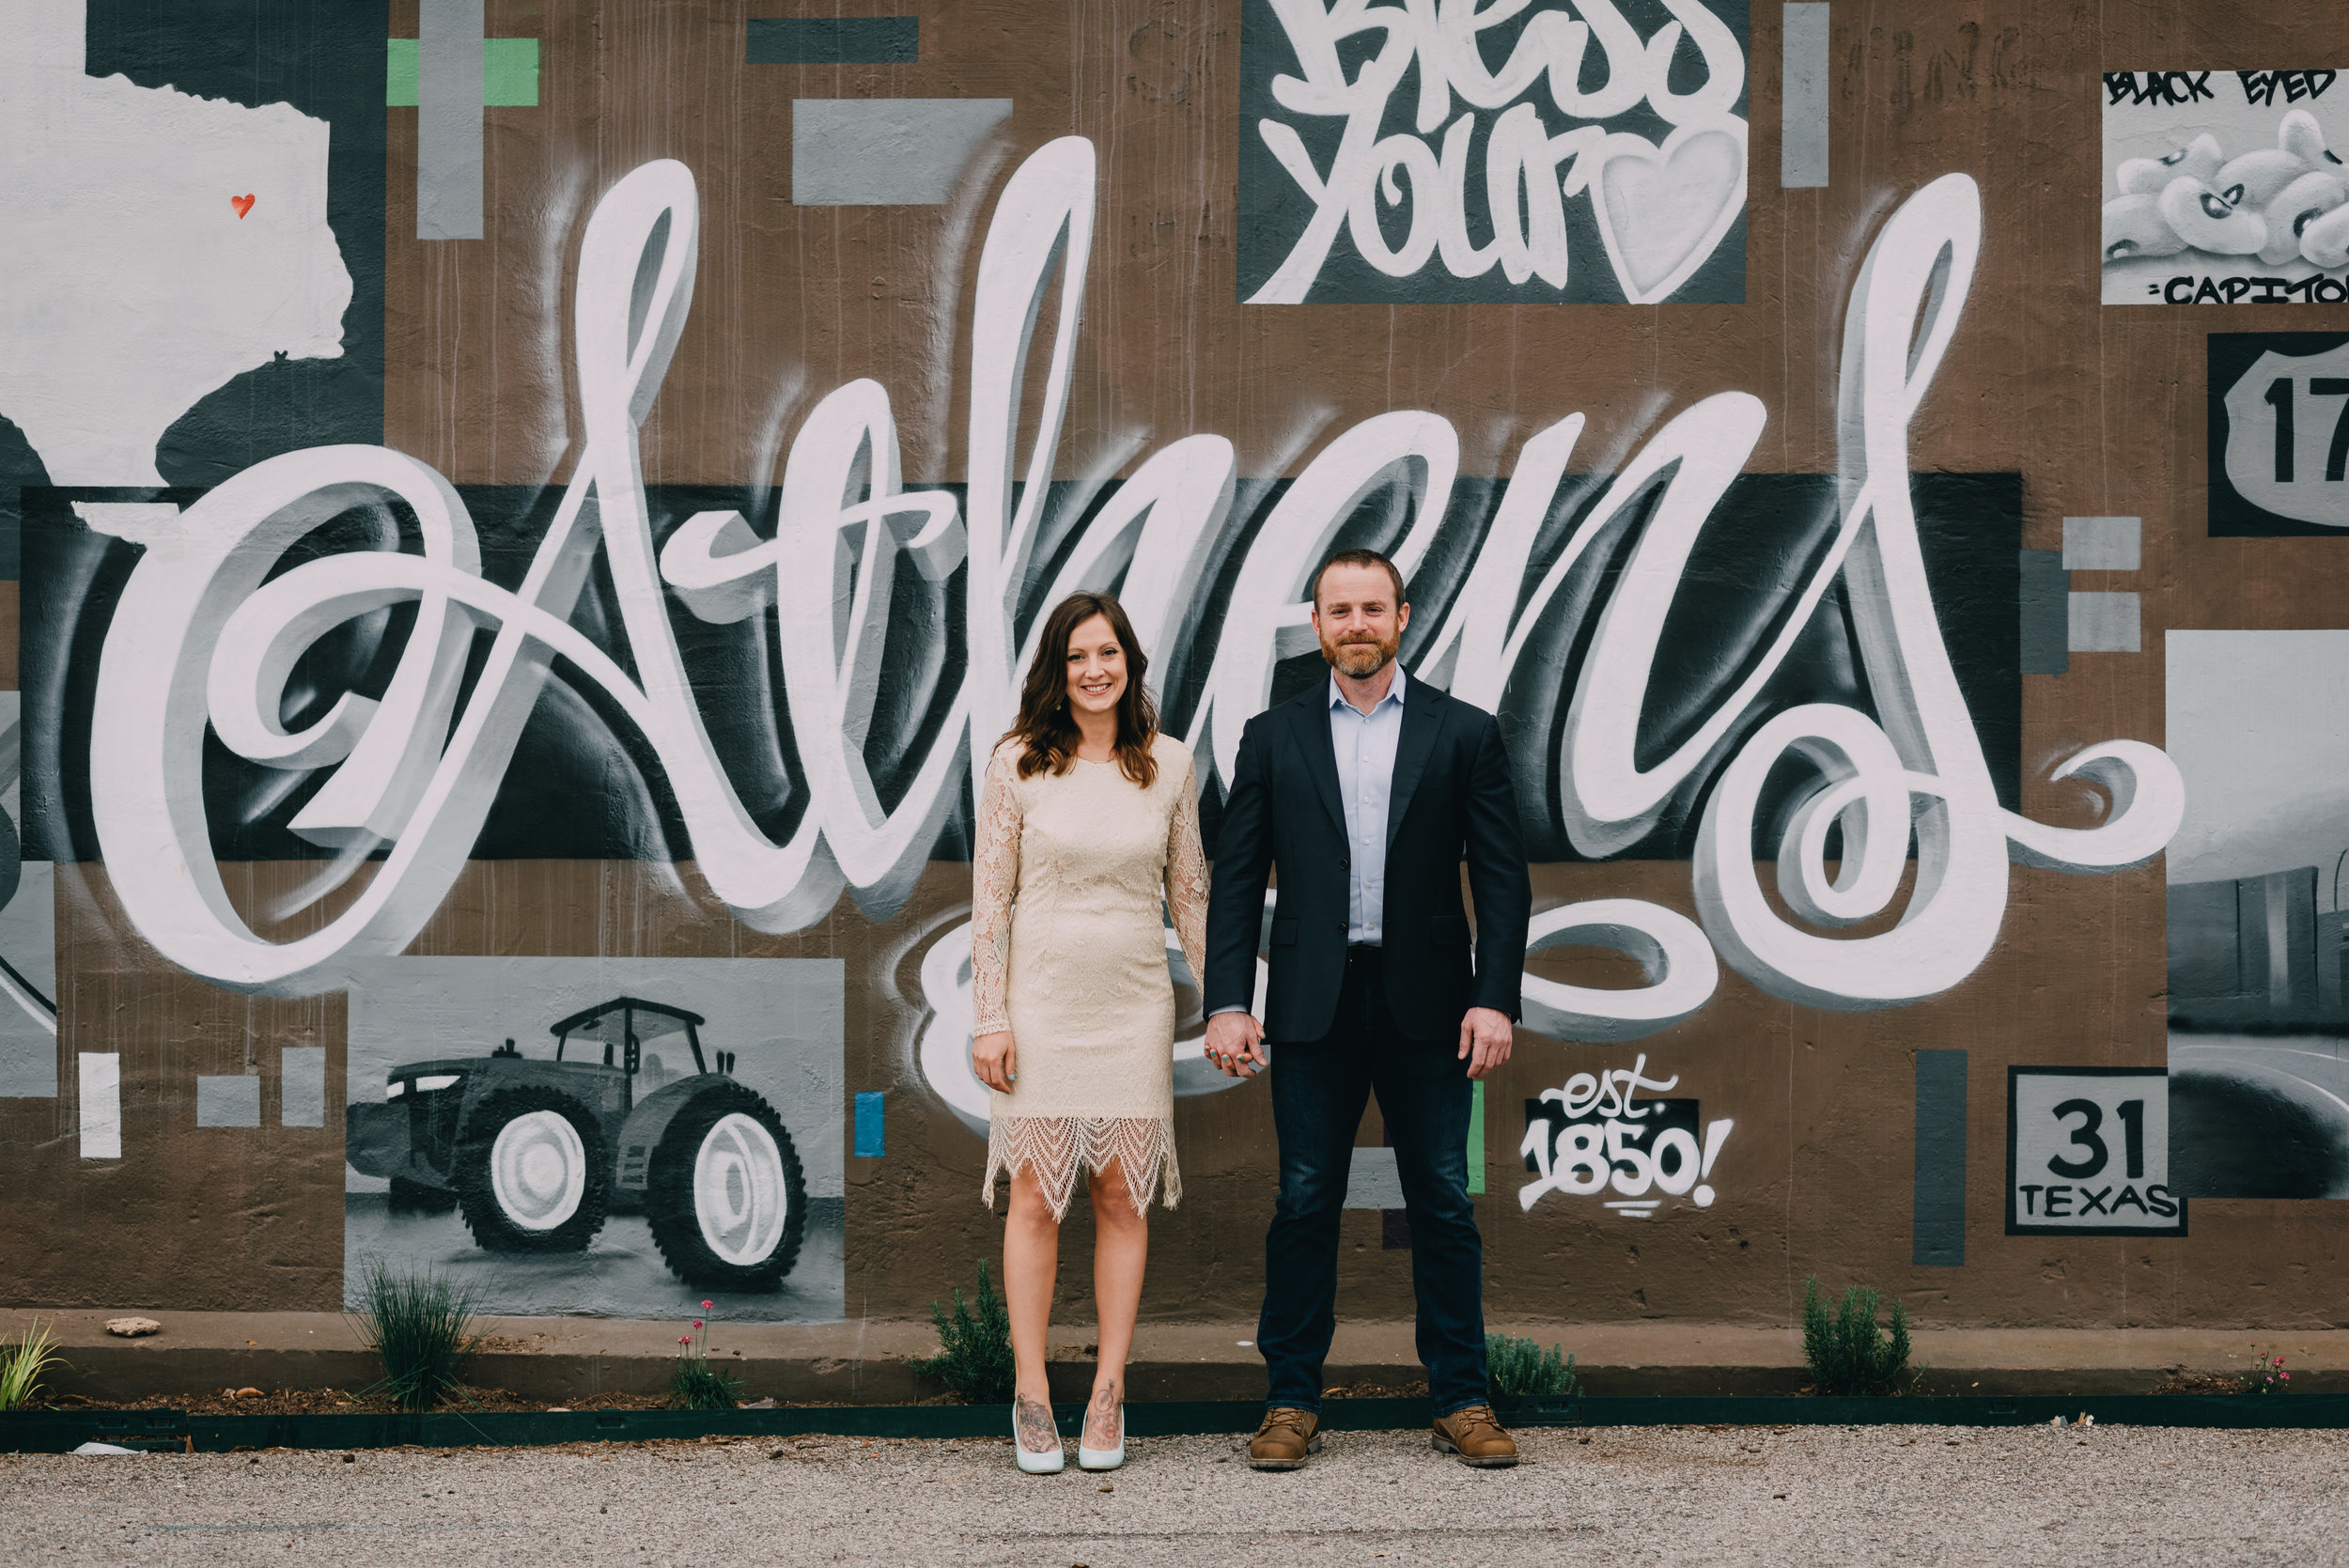 Kalli and Jake engagement photos 2018 (Austin Daniel Photo)-2.jpg